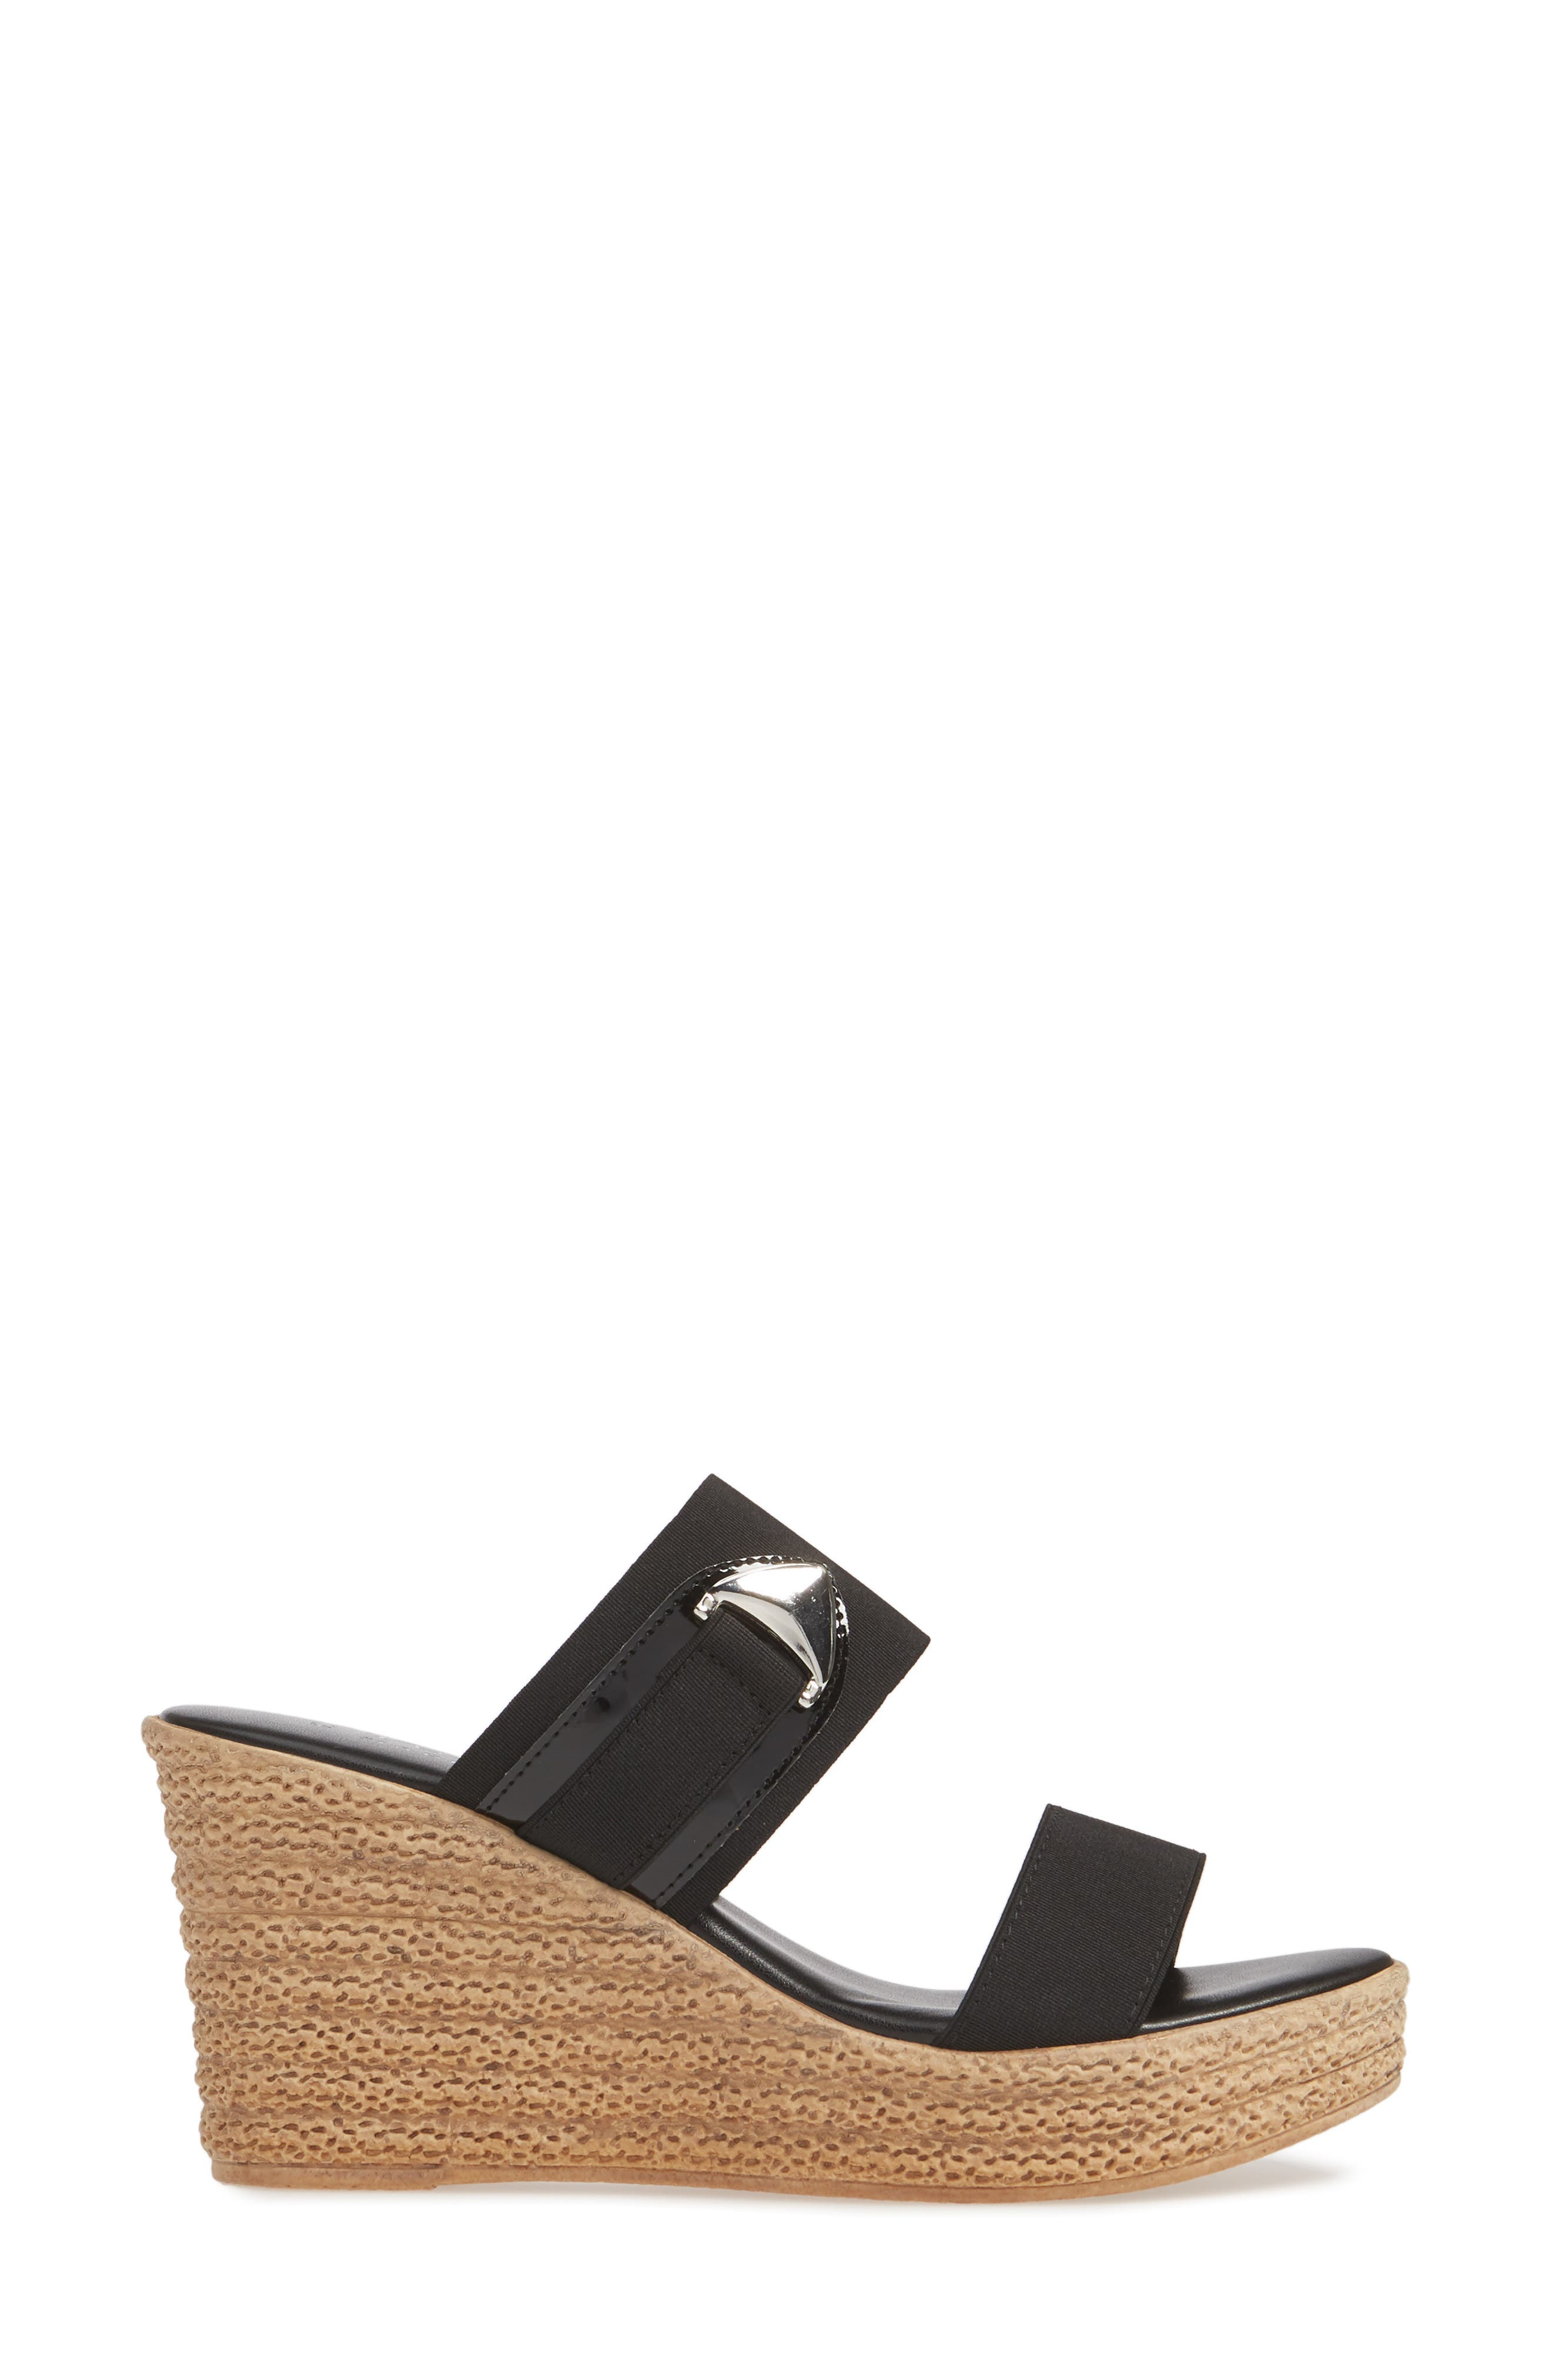 TUSCANY BY EASY STREET<SUP>®</SUP>, Marisole Platform Wedge Sandal, Alternate thumbnail 3, color, BLACK LEATHER